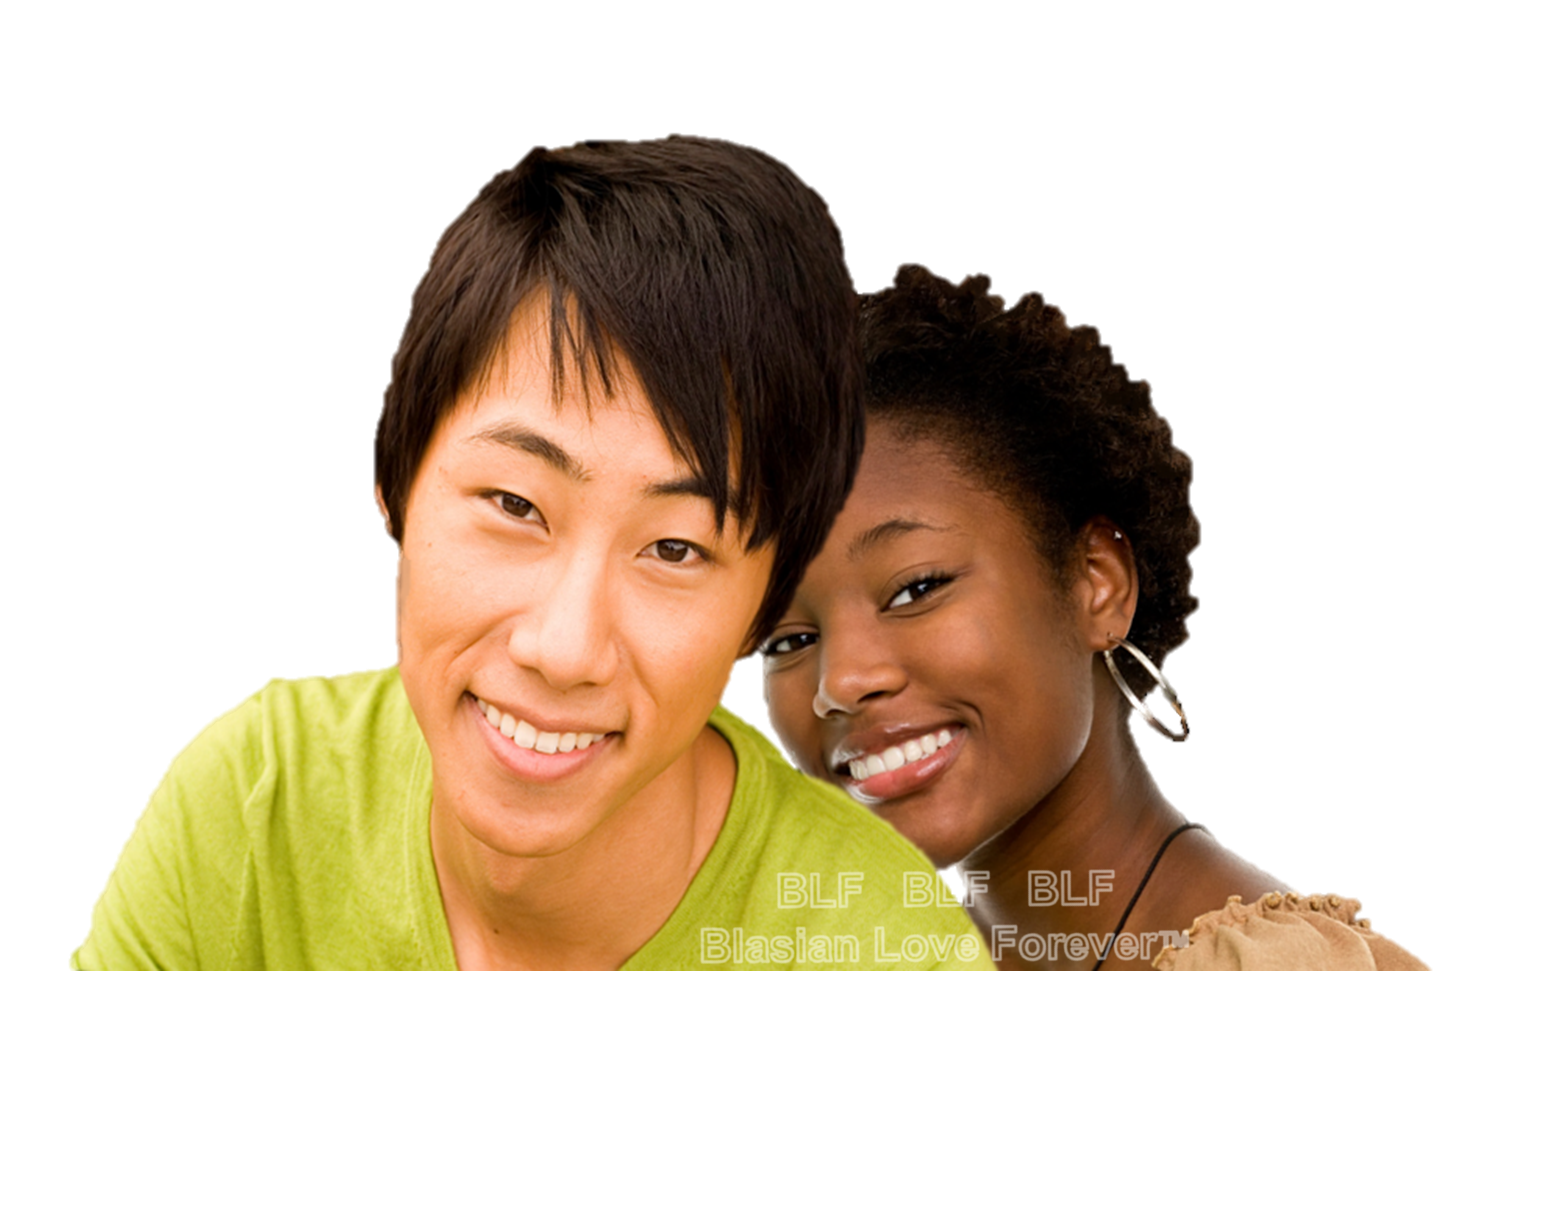 hopedale black women dating site Bwwmrelationshipscom is the best place for you if you are looking for an online community that is dedicated to providing interracial dating services to black women and white men, not only.